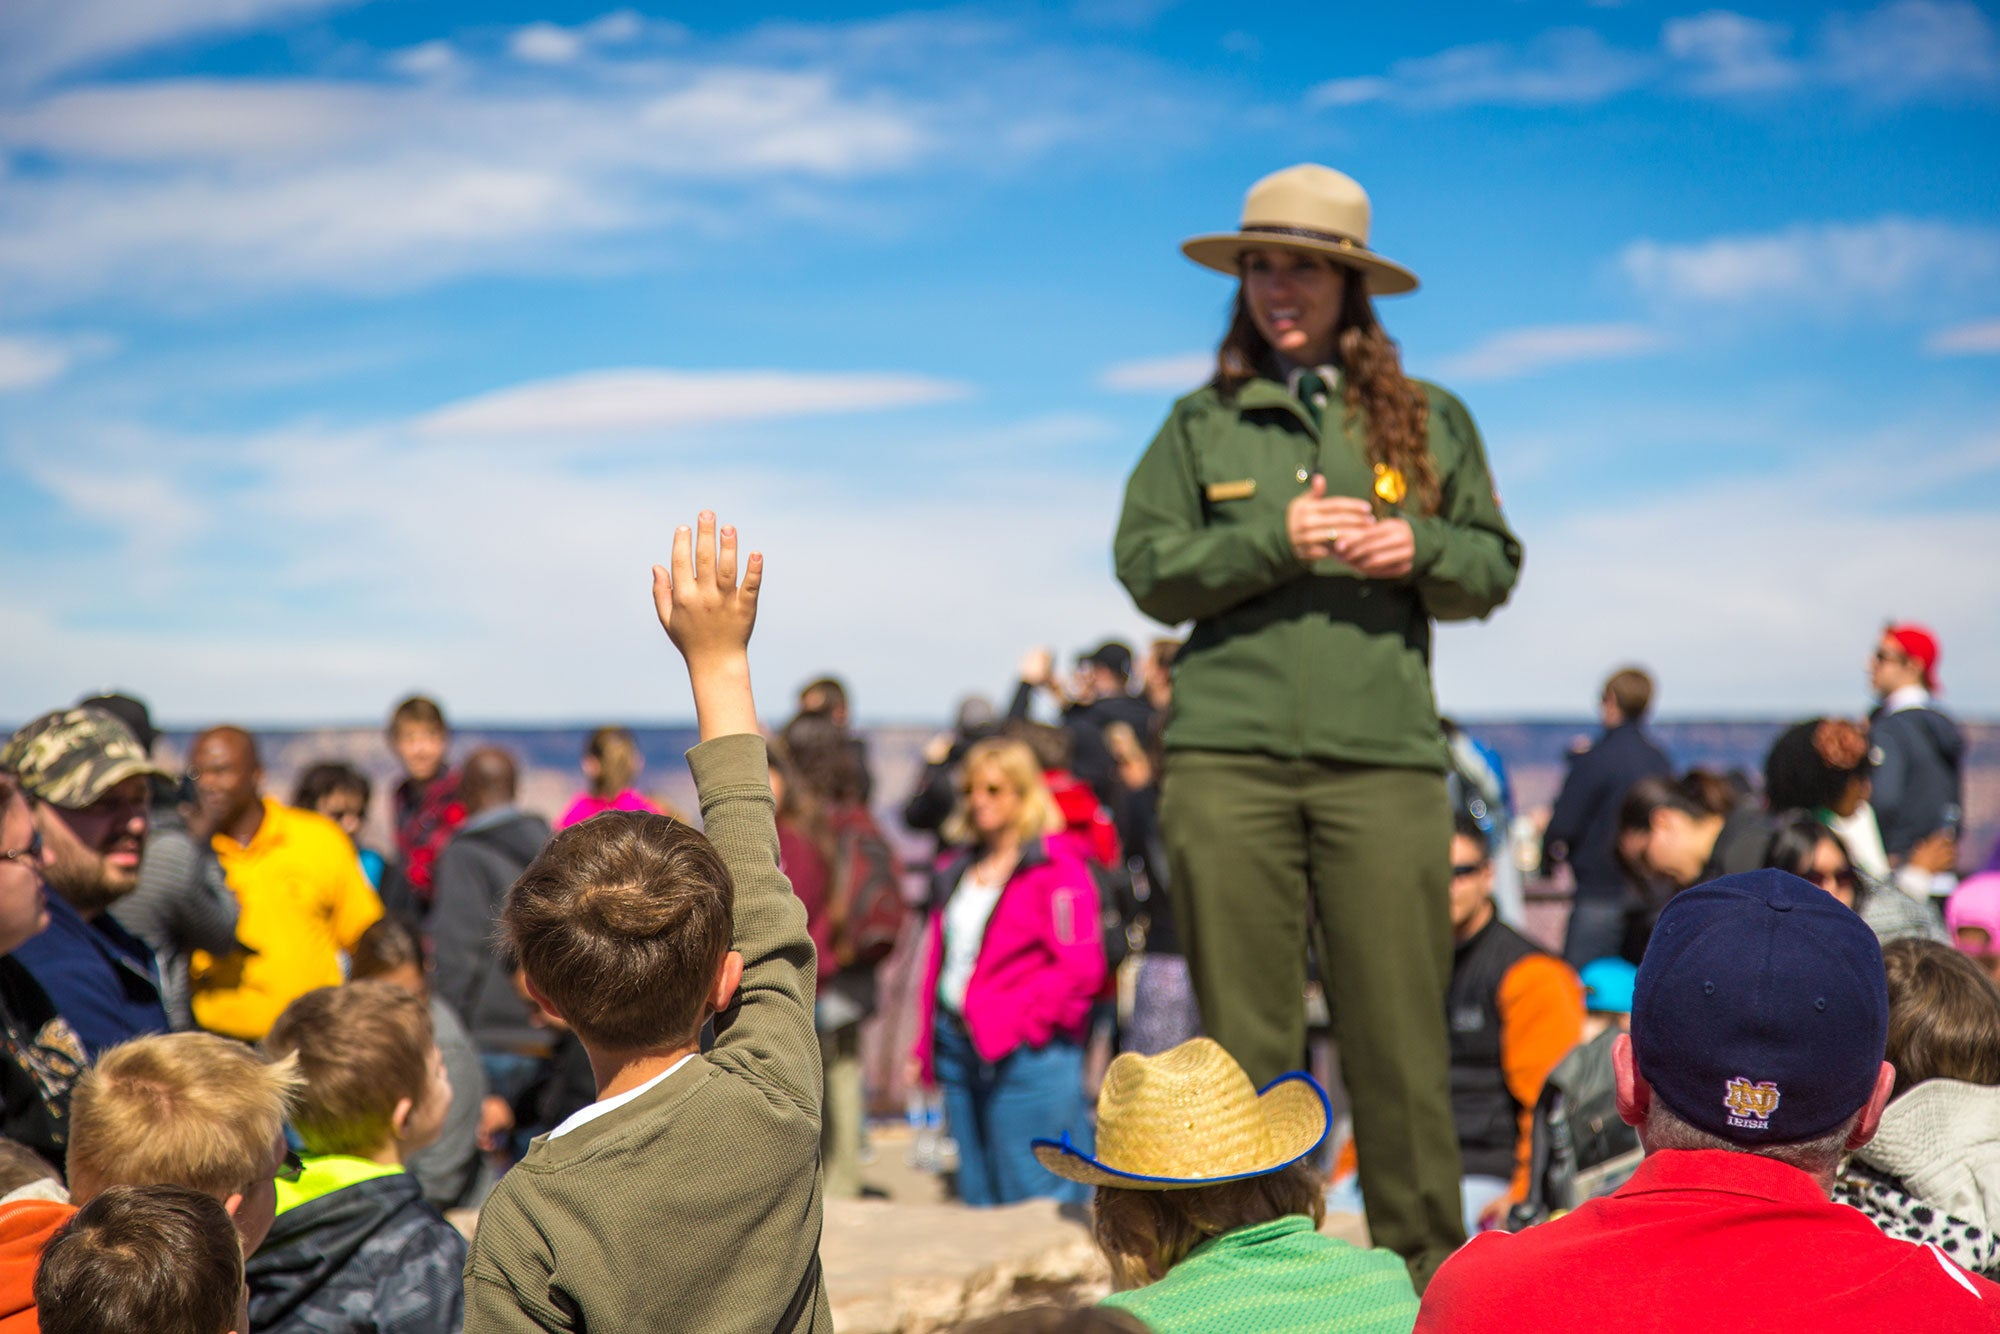 Young boy raises his hand to ask a Park Ranger a question.